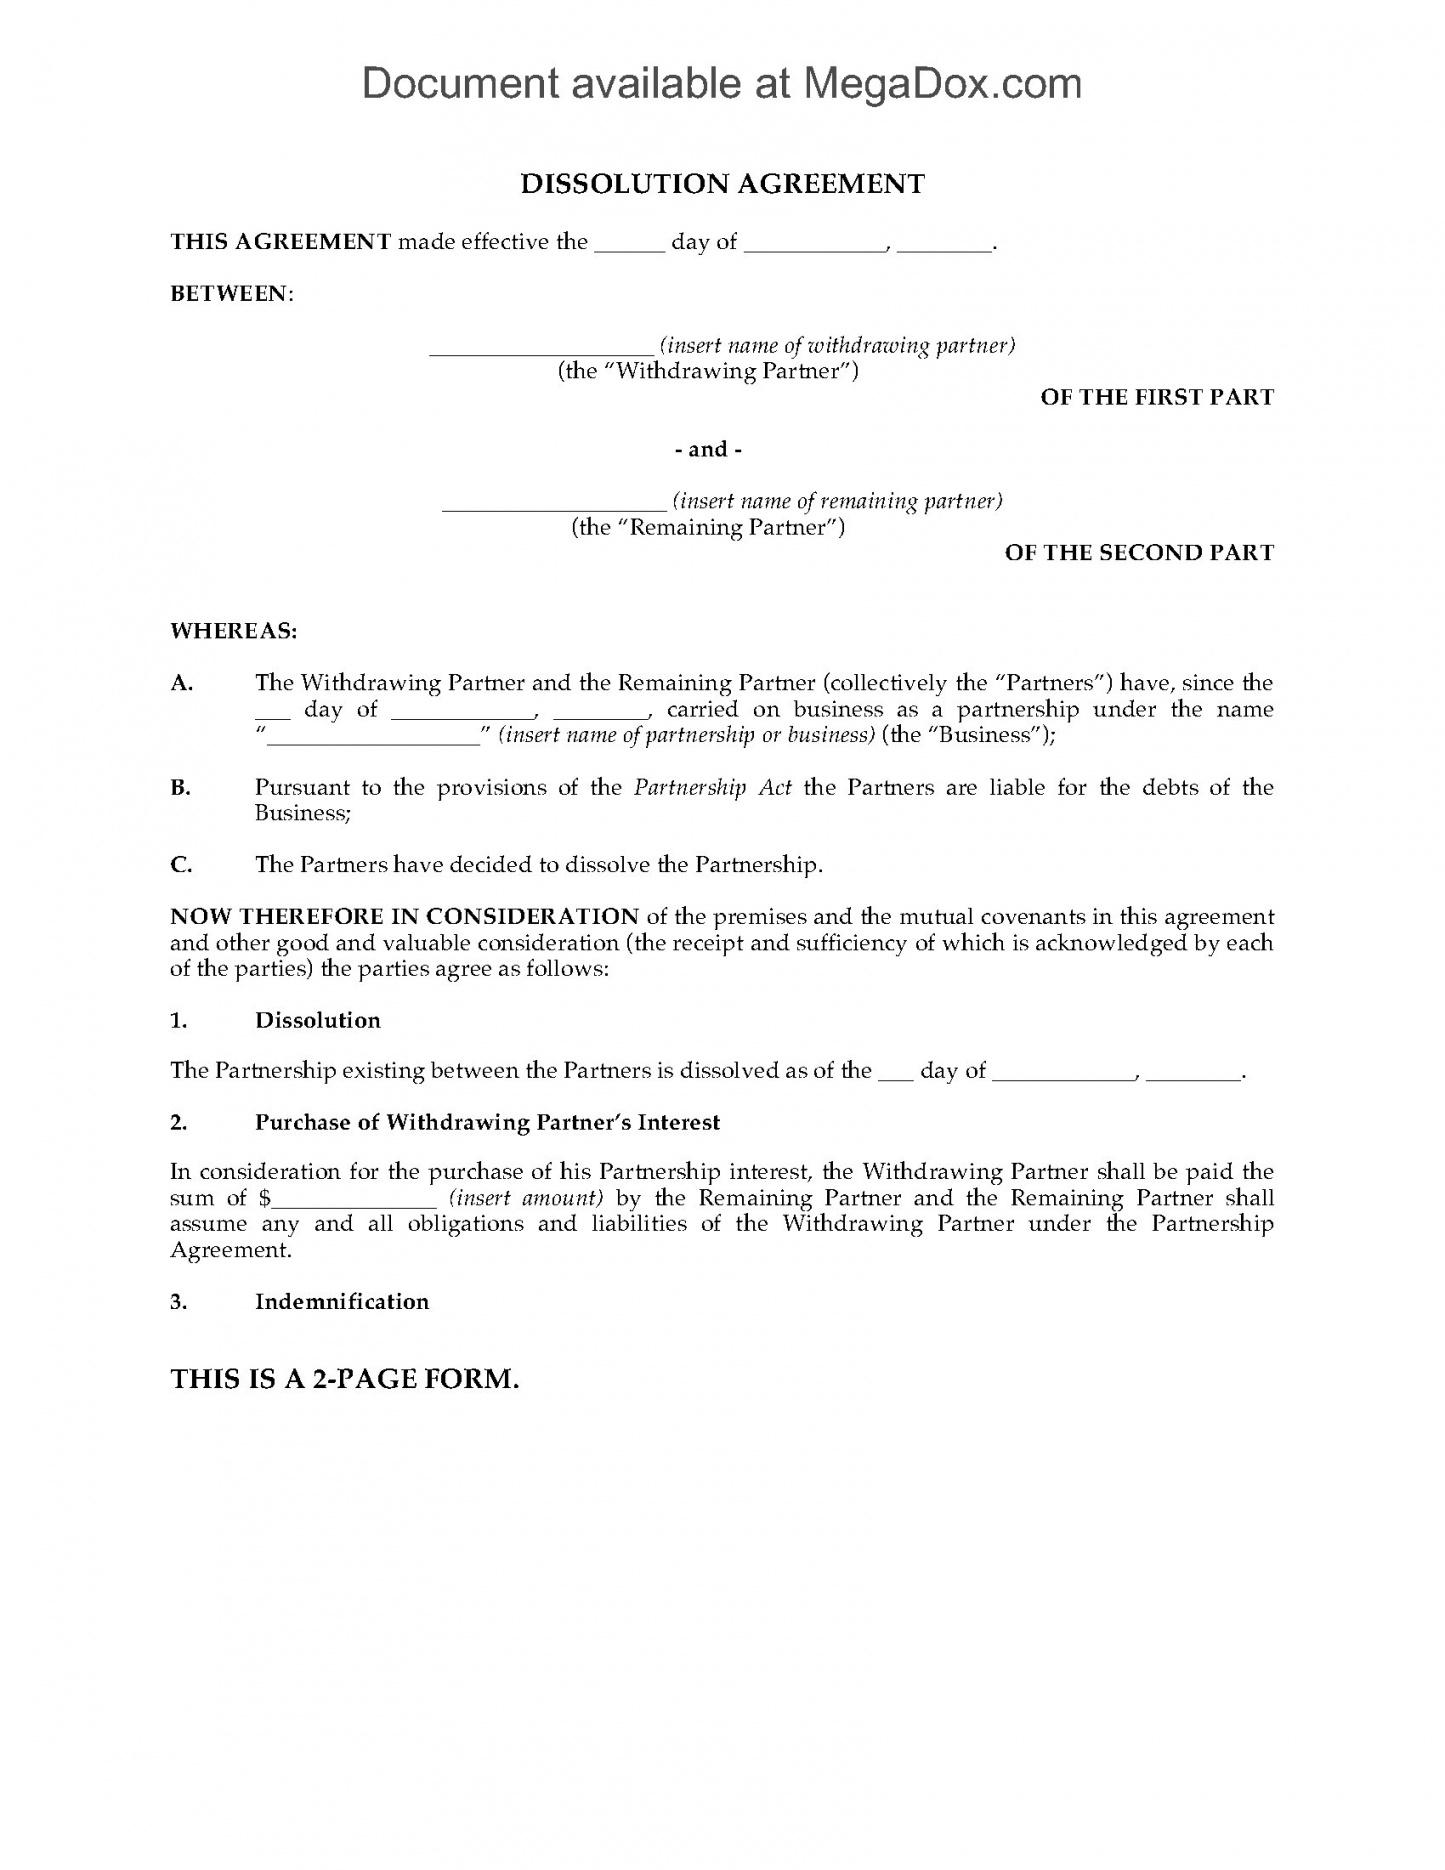 here the alberta partnership dissolution agreement  legal forms and business partnership withdrawal agreement template